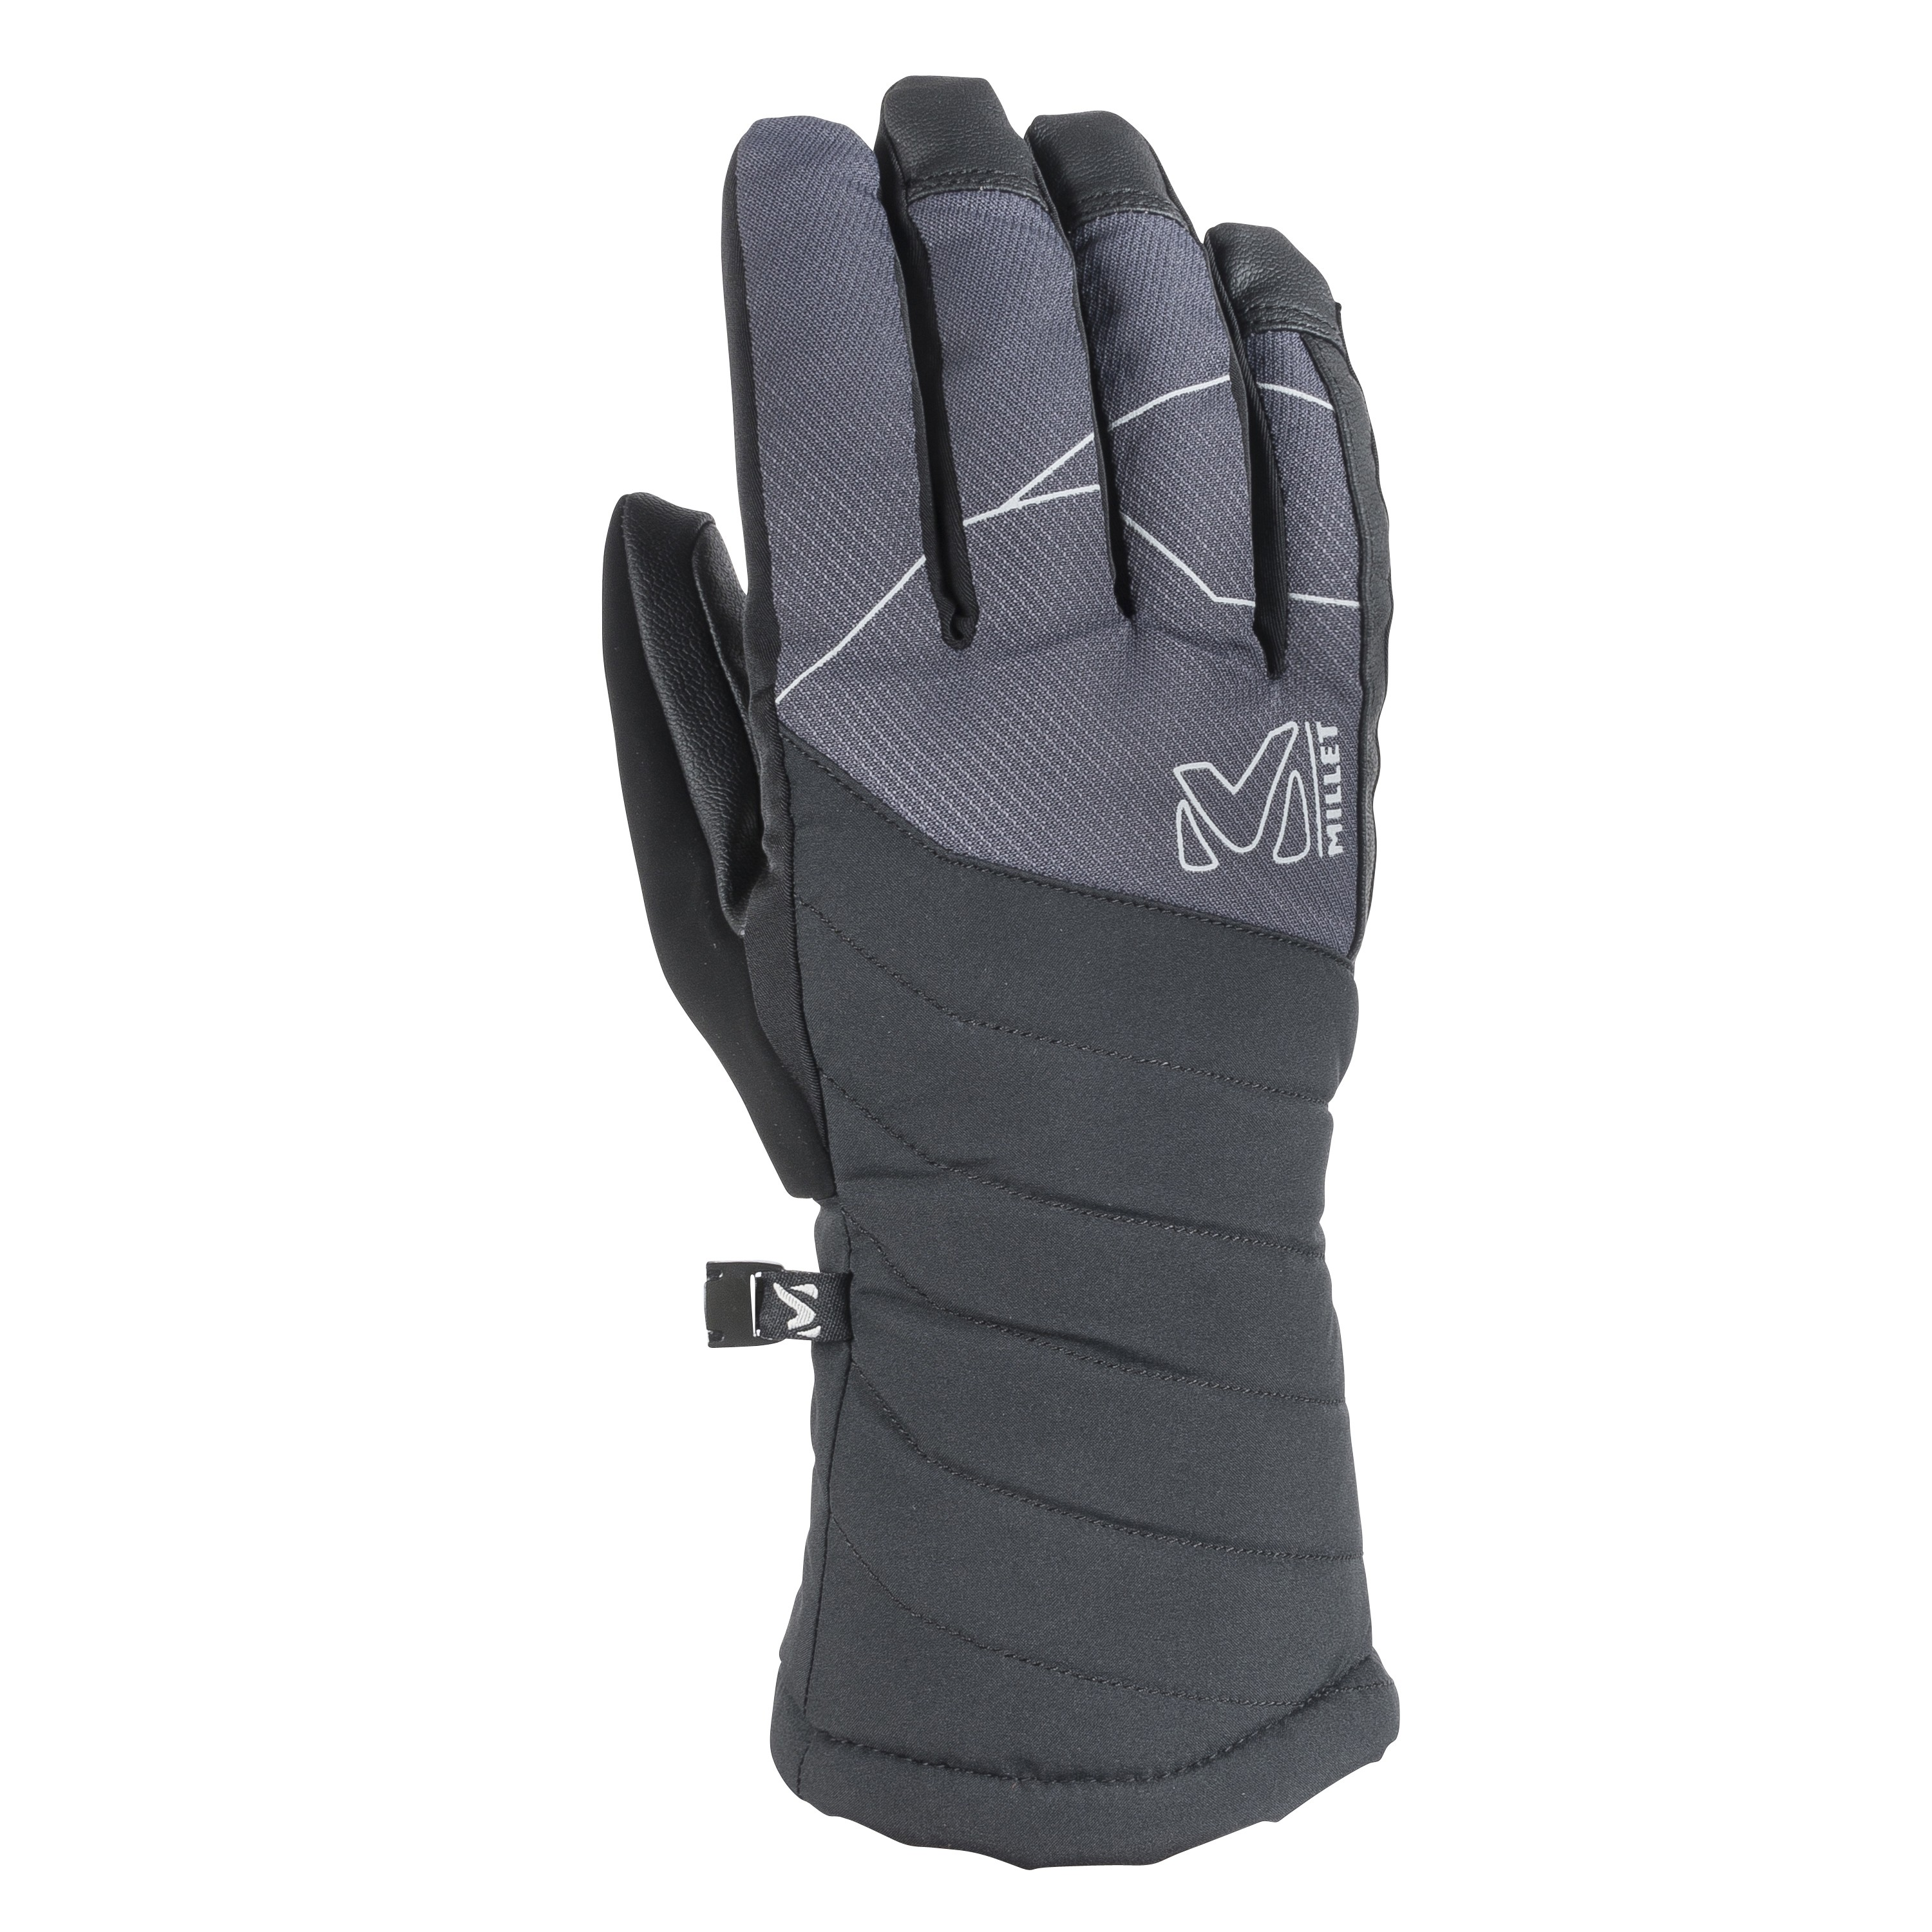 LD ATNA PEAK DRYEDGE GLOVE